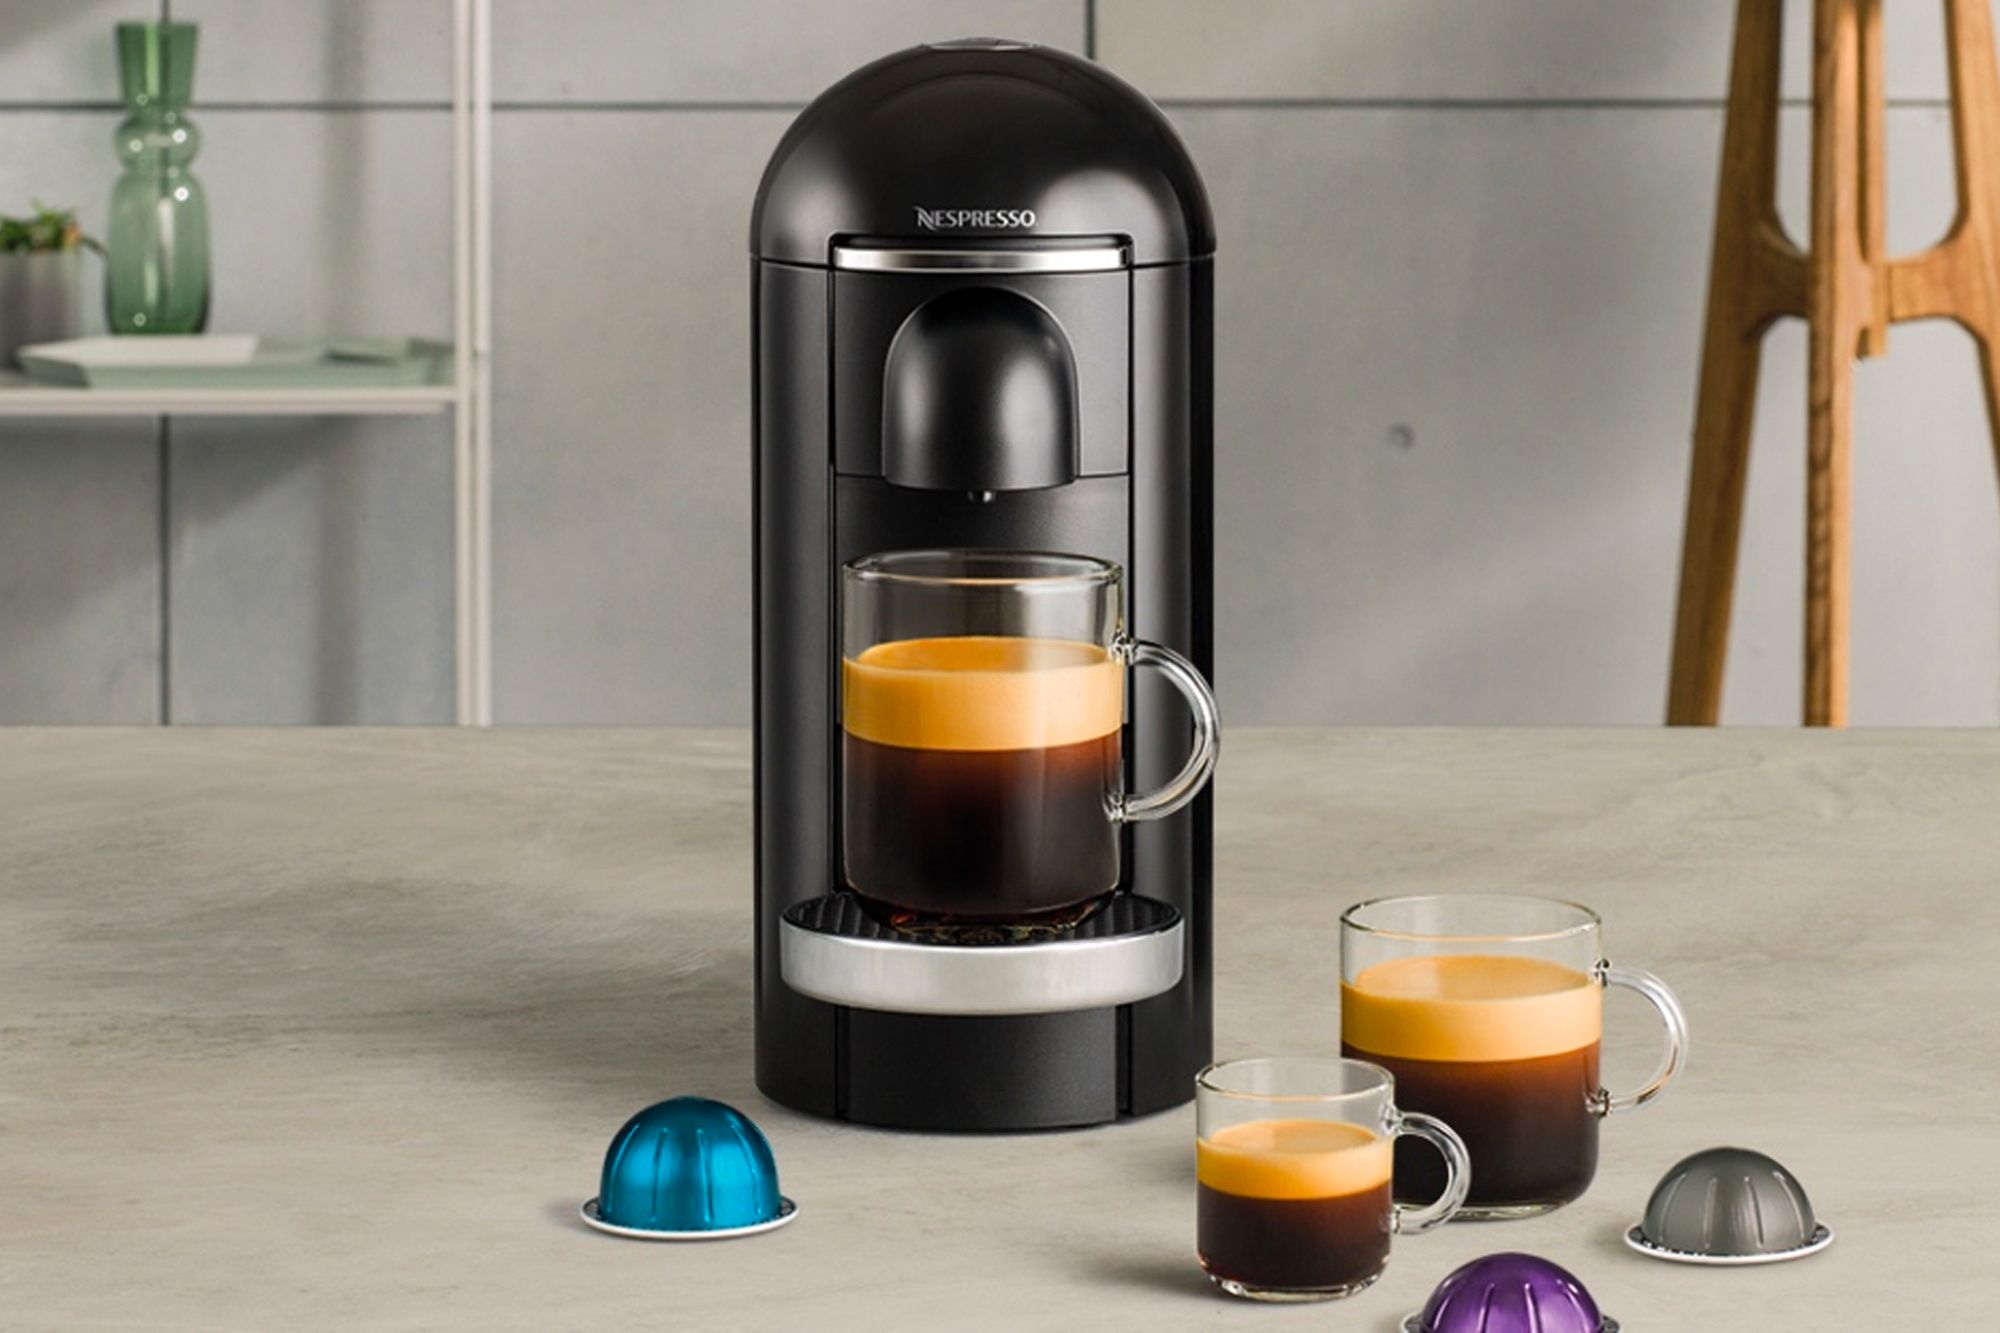 Nespresso's Vertuo machine is the latest addition to its acclaimed line-up Image: Nespresso